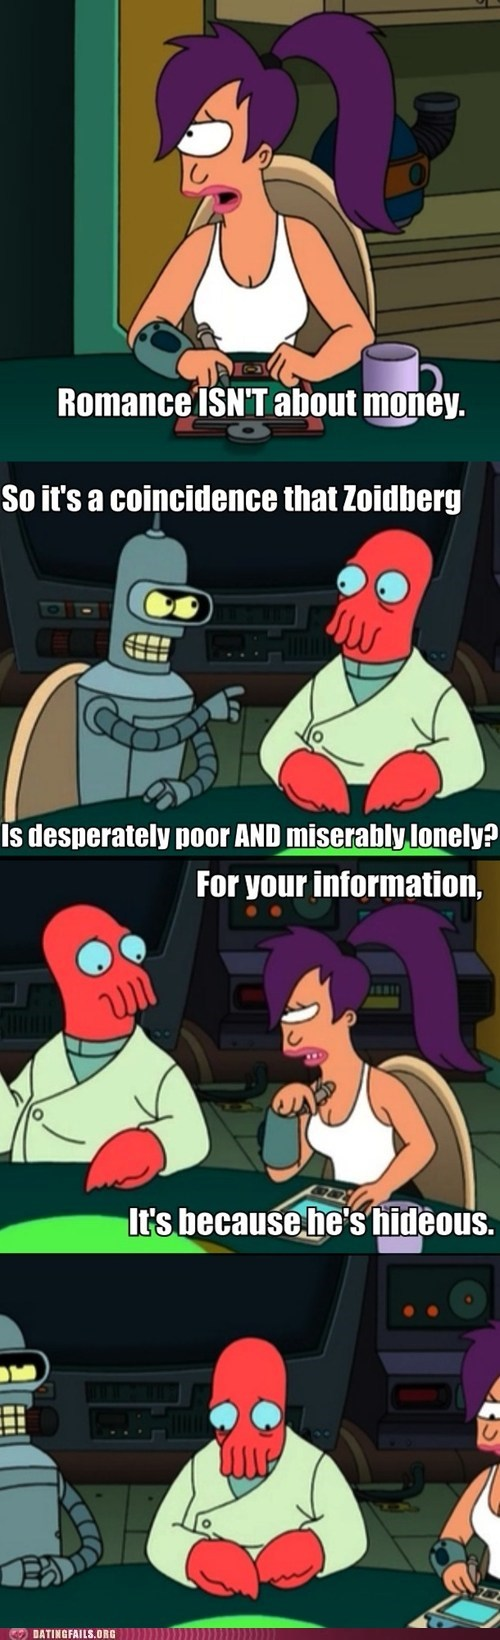 bender forever a zoidberg futurama Hall of Fame leela romance and money too ugly